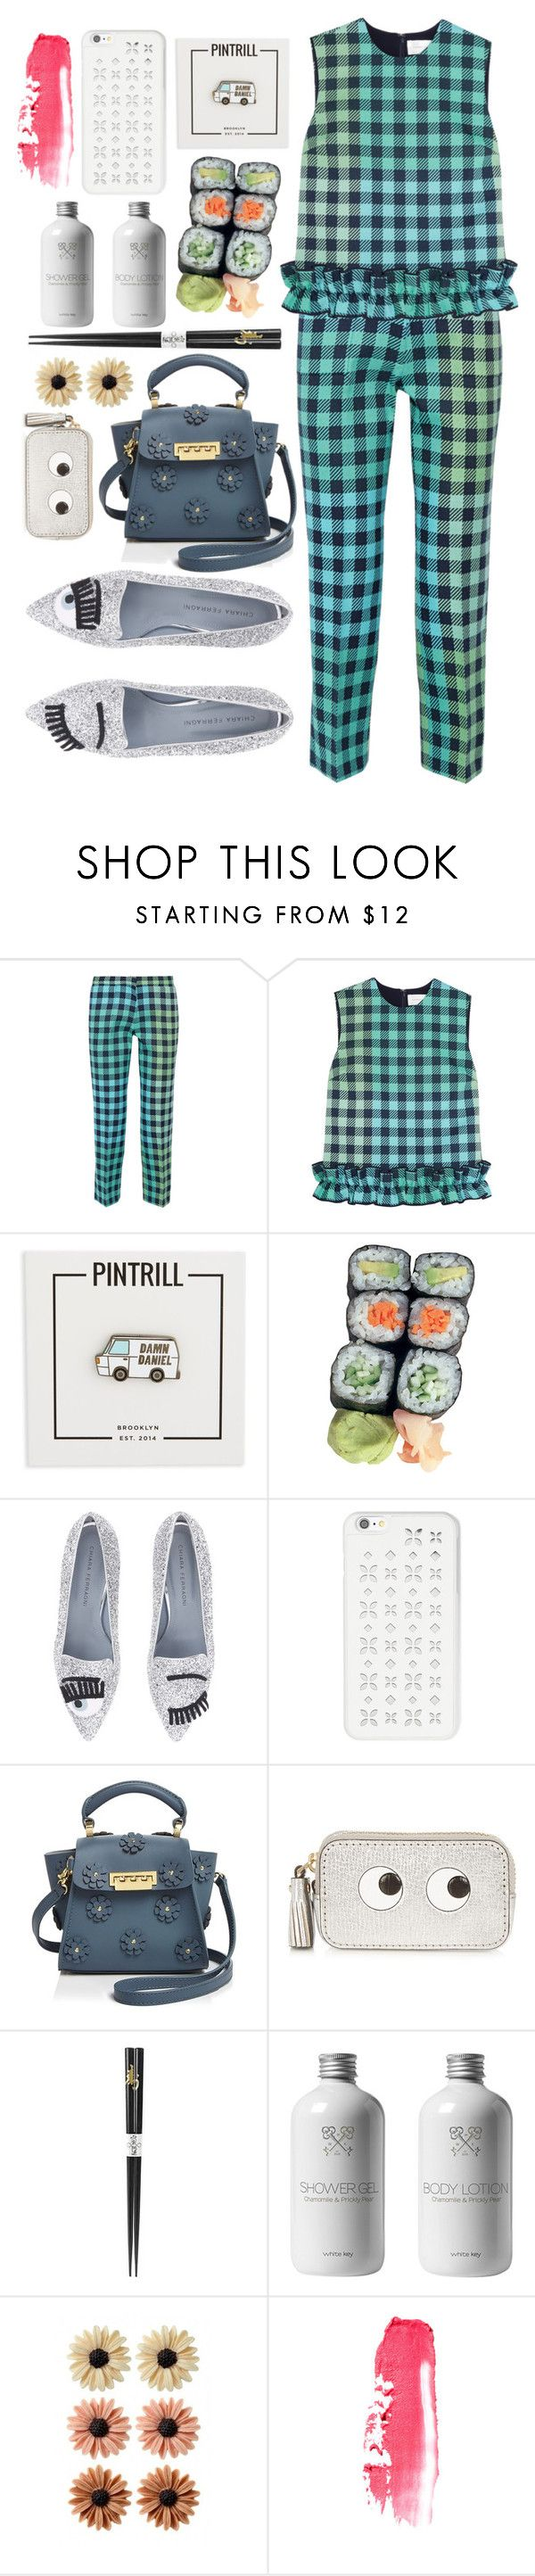 """Sin título #1098"" by meelstyle ❤ liked on Polyvore featuring Victoria, Victoria Beckham, PINTRILL, Chiara Ferragni, MICHAEL Michael Kors, ZAC Zac Posen, Anya Hindmarch, Kotobuki and mae"